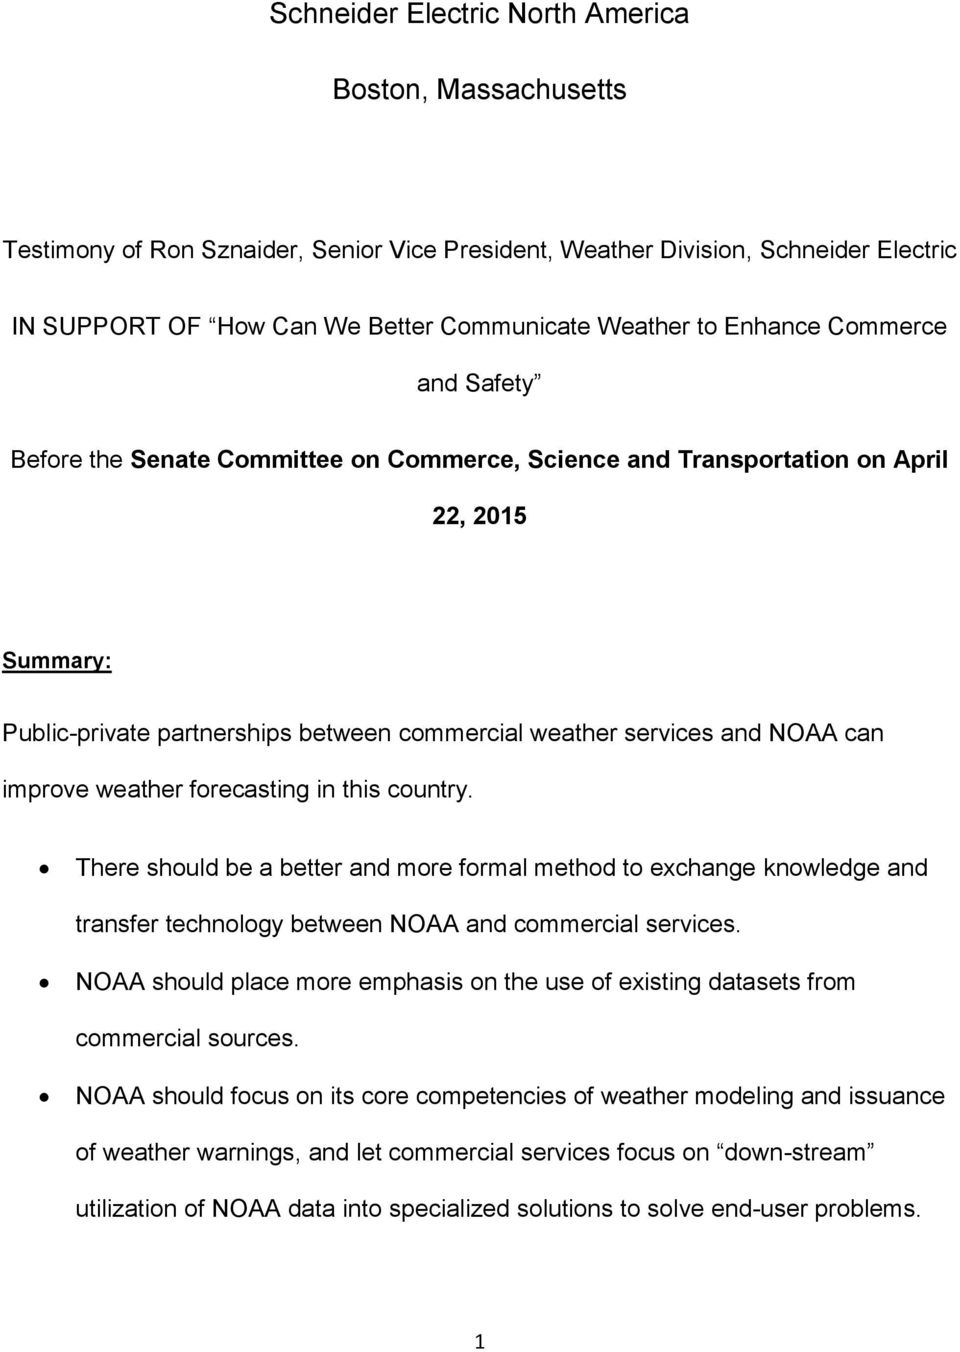 improve weather forecasting in this country. There should be a better and more formal method to exchange knowledge and transfer technology between NOAA and commercial services.